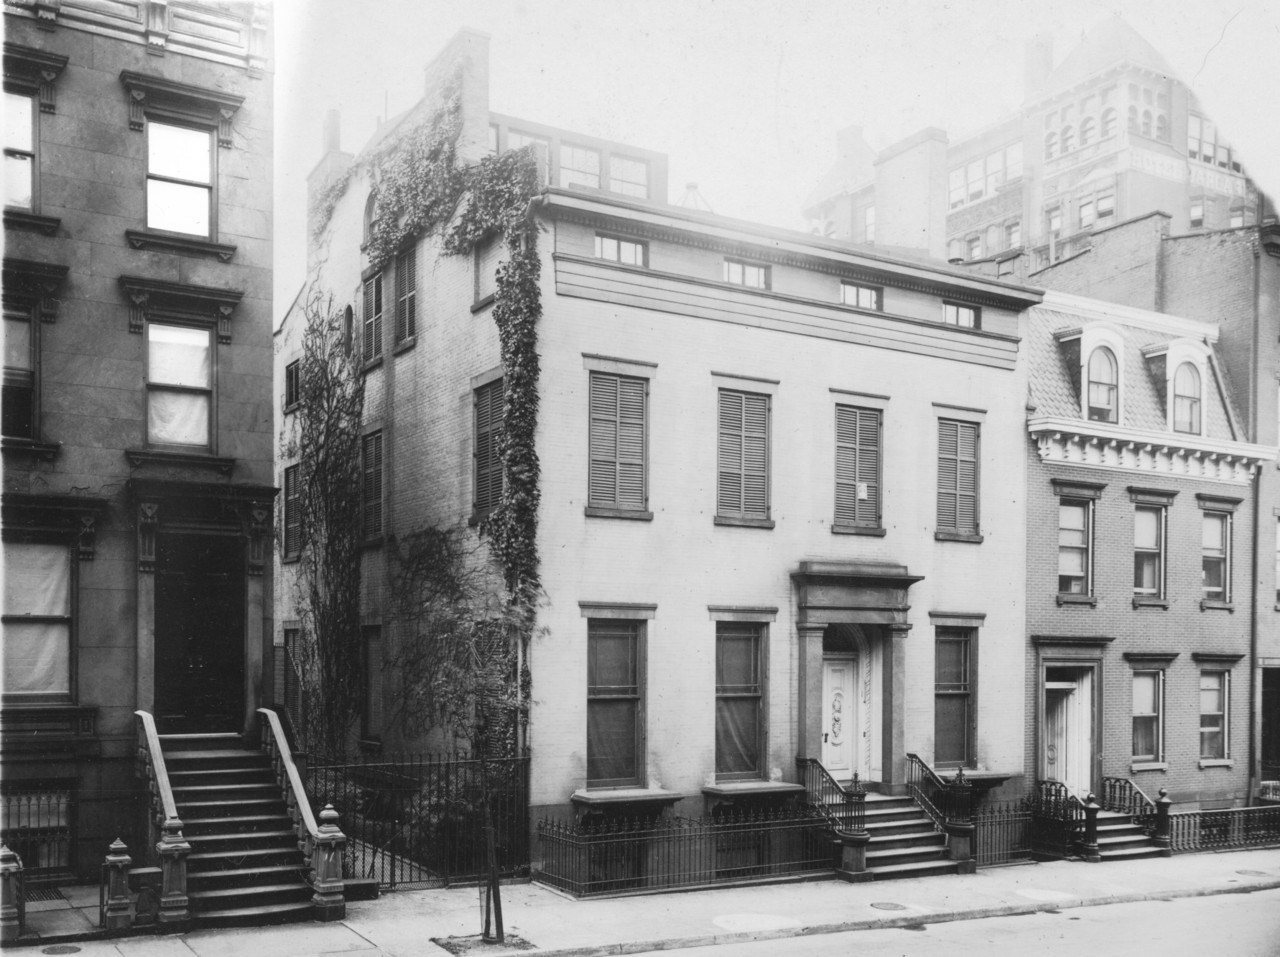 Truman Capote's townhouse in Brooklyn Heights in 1922